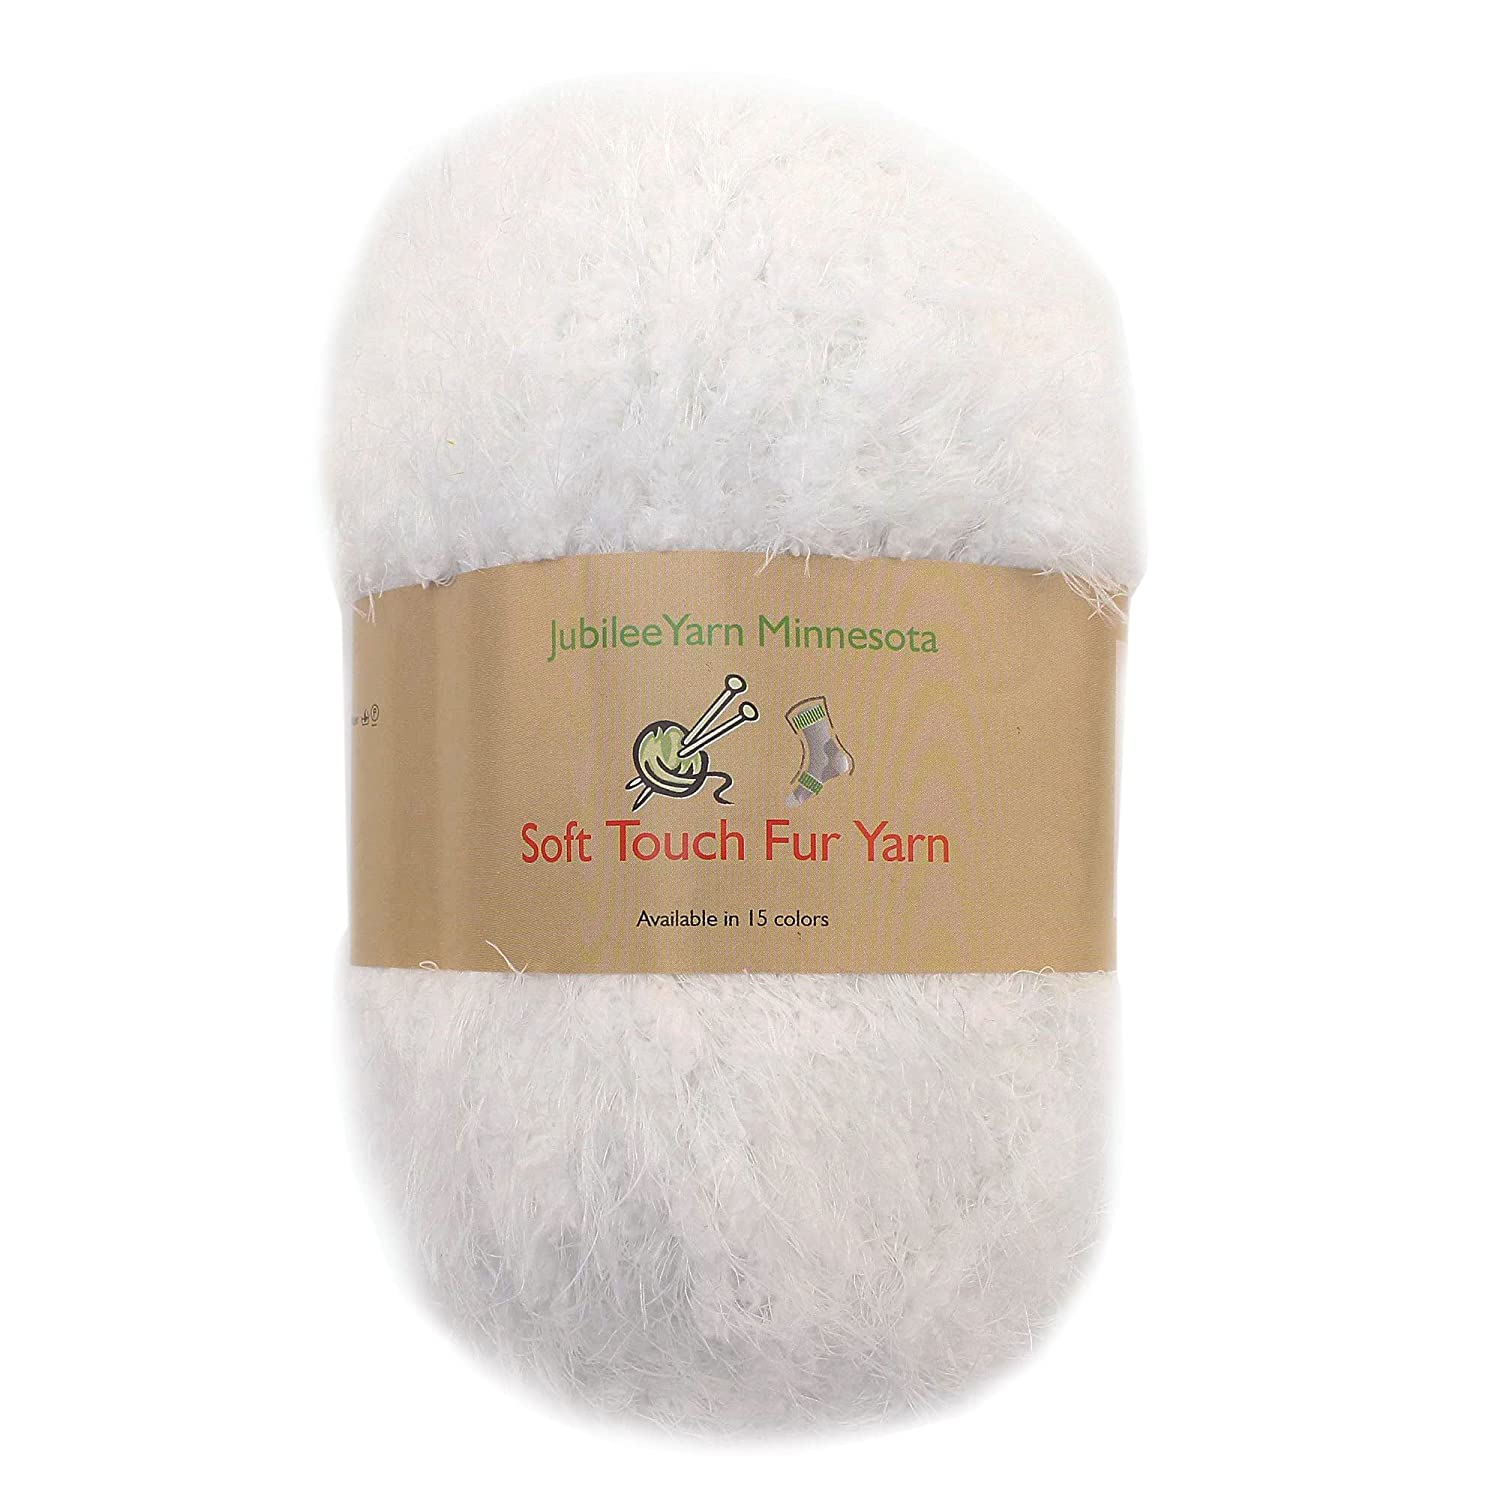 JubileeYarn 100g Soft Touch Fuzzy Fur Yarn, White 2 Skeins